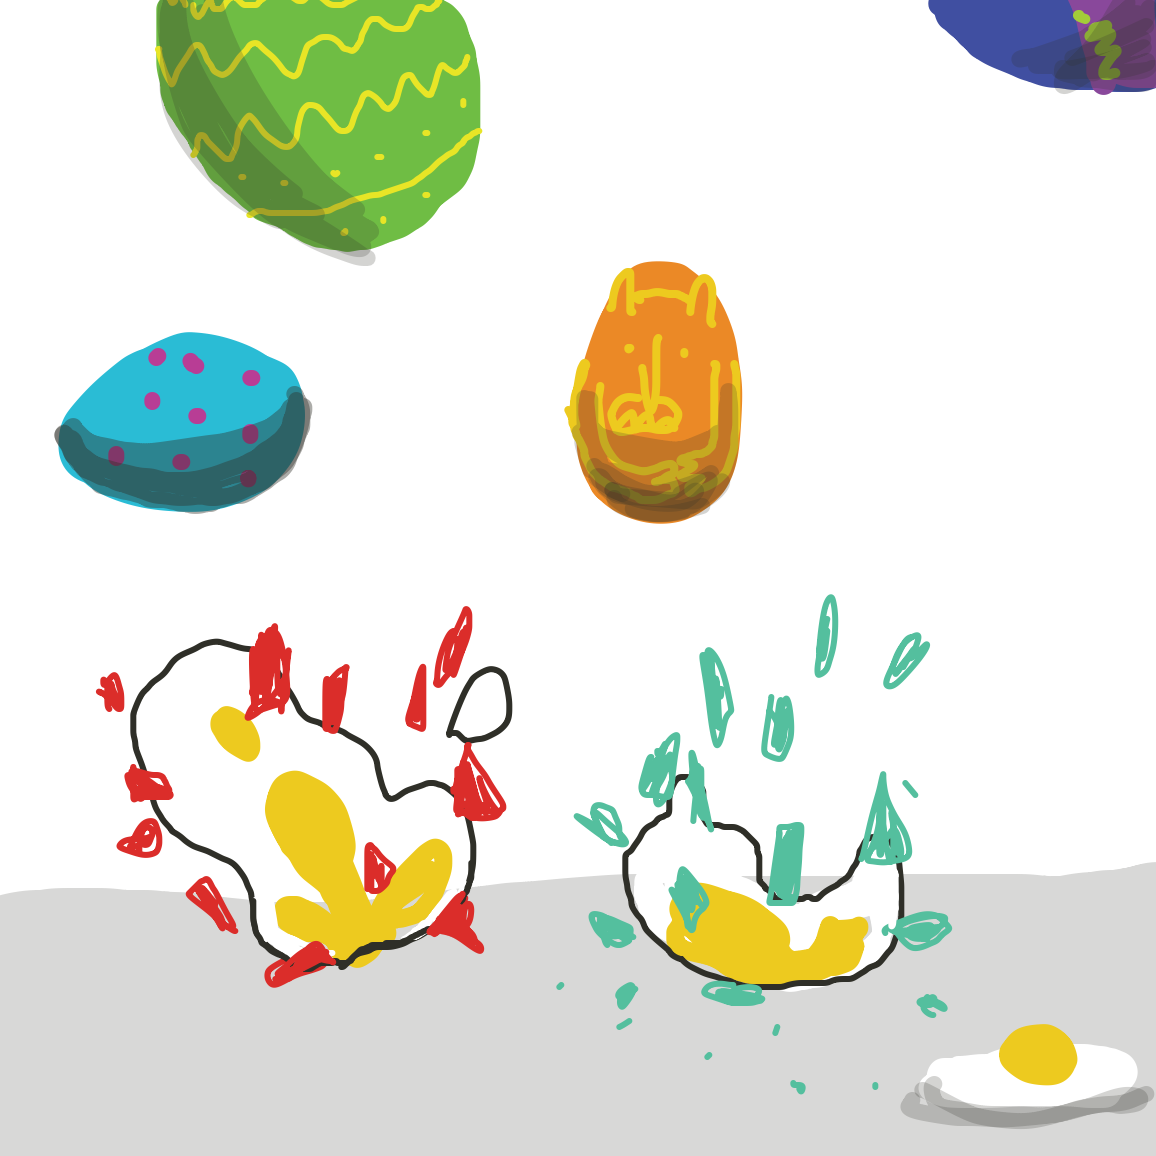 Drawing in Continue the eggs! by joshyouart